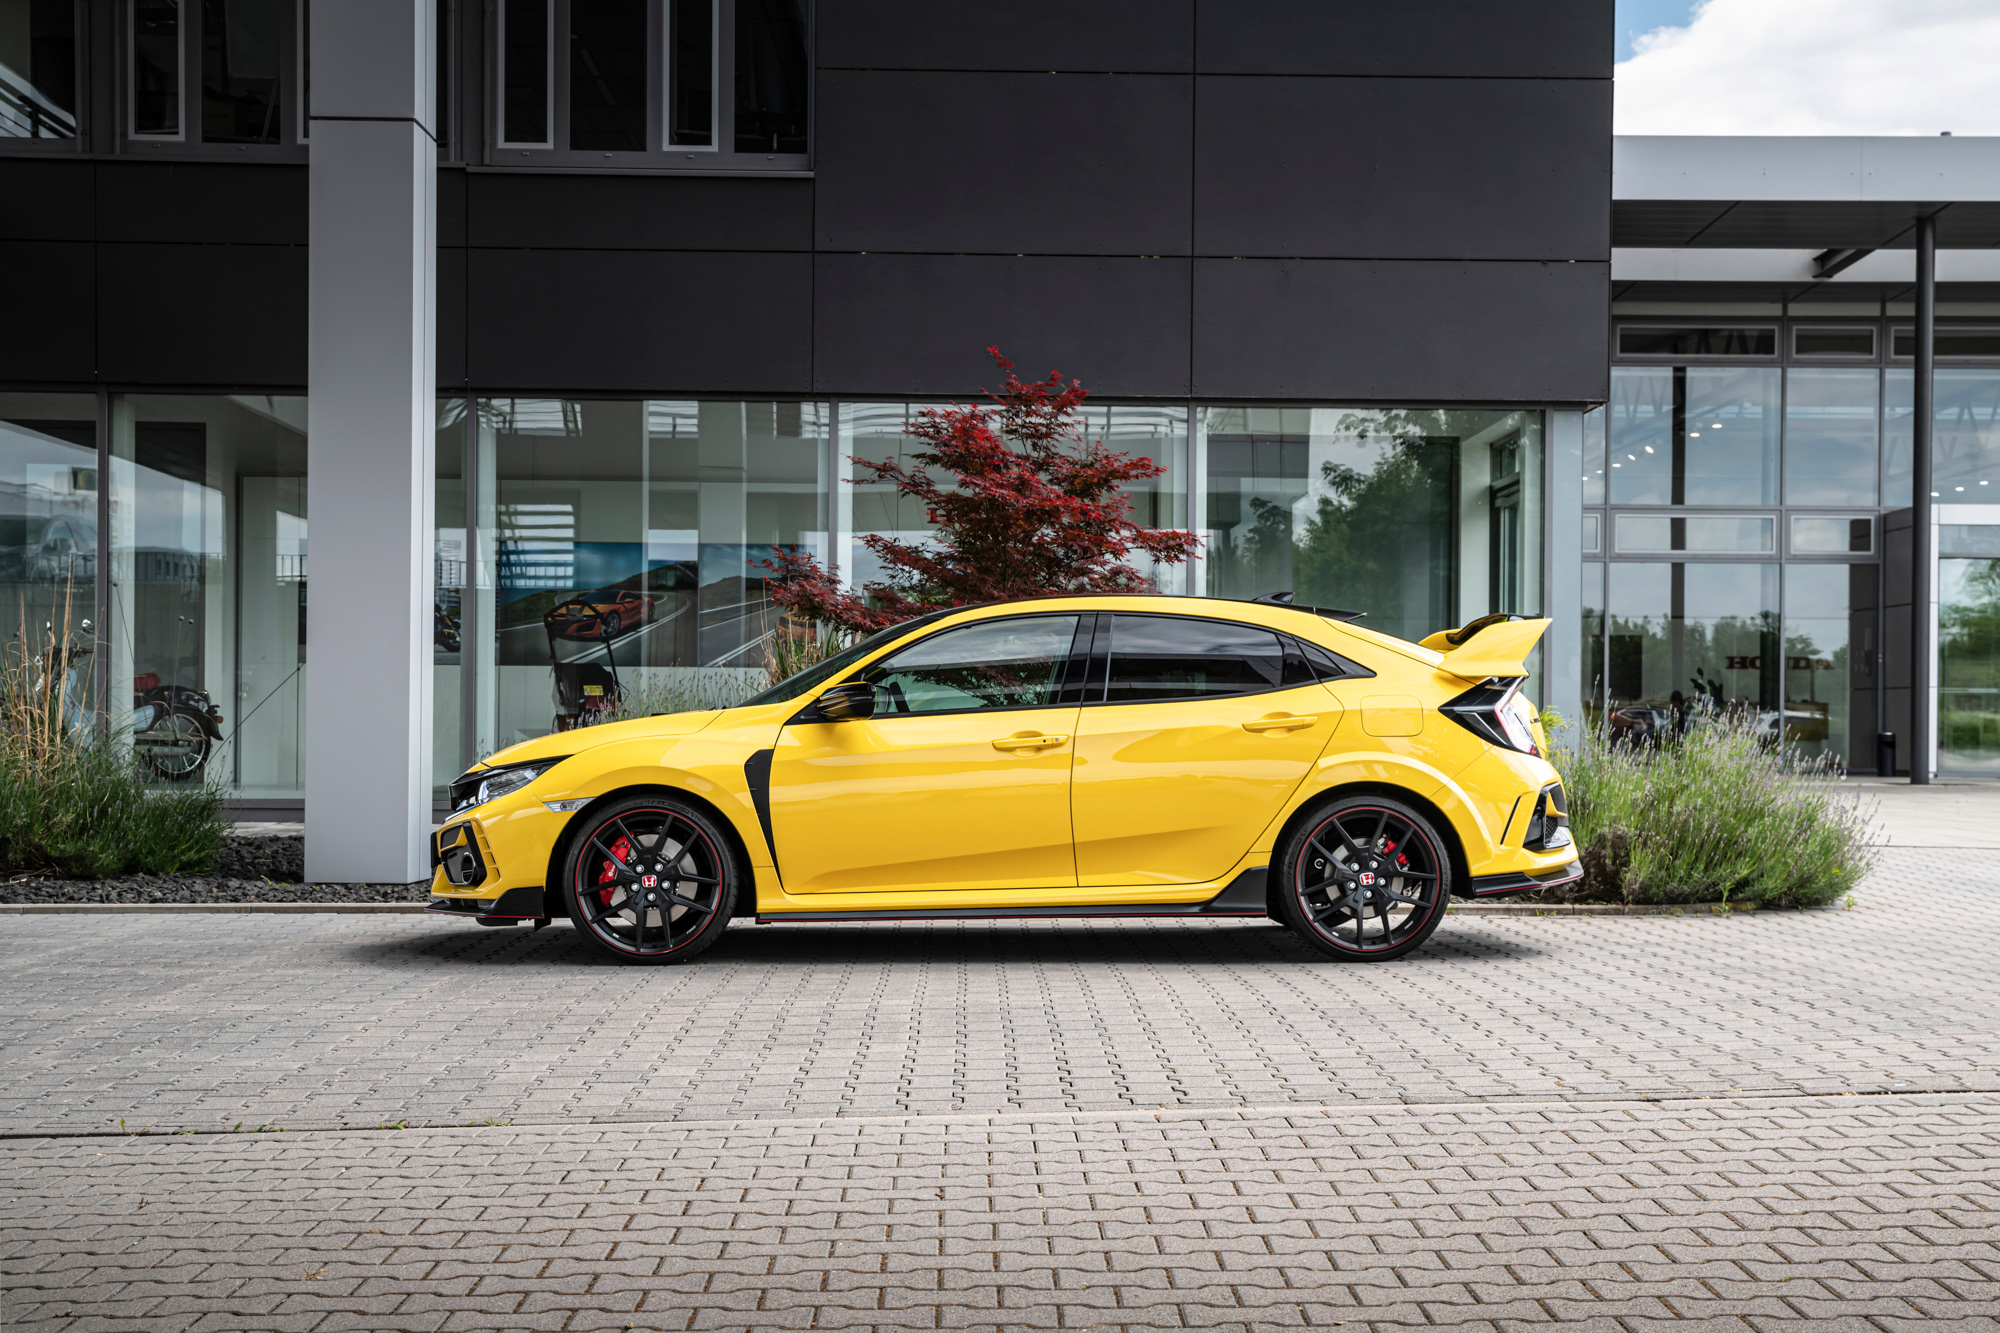 hondacivictyper2021limited-cafeautovn-3